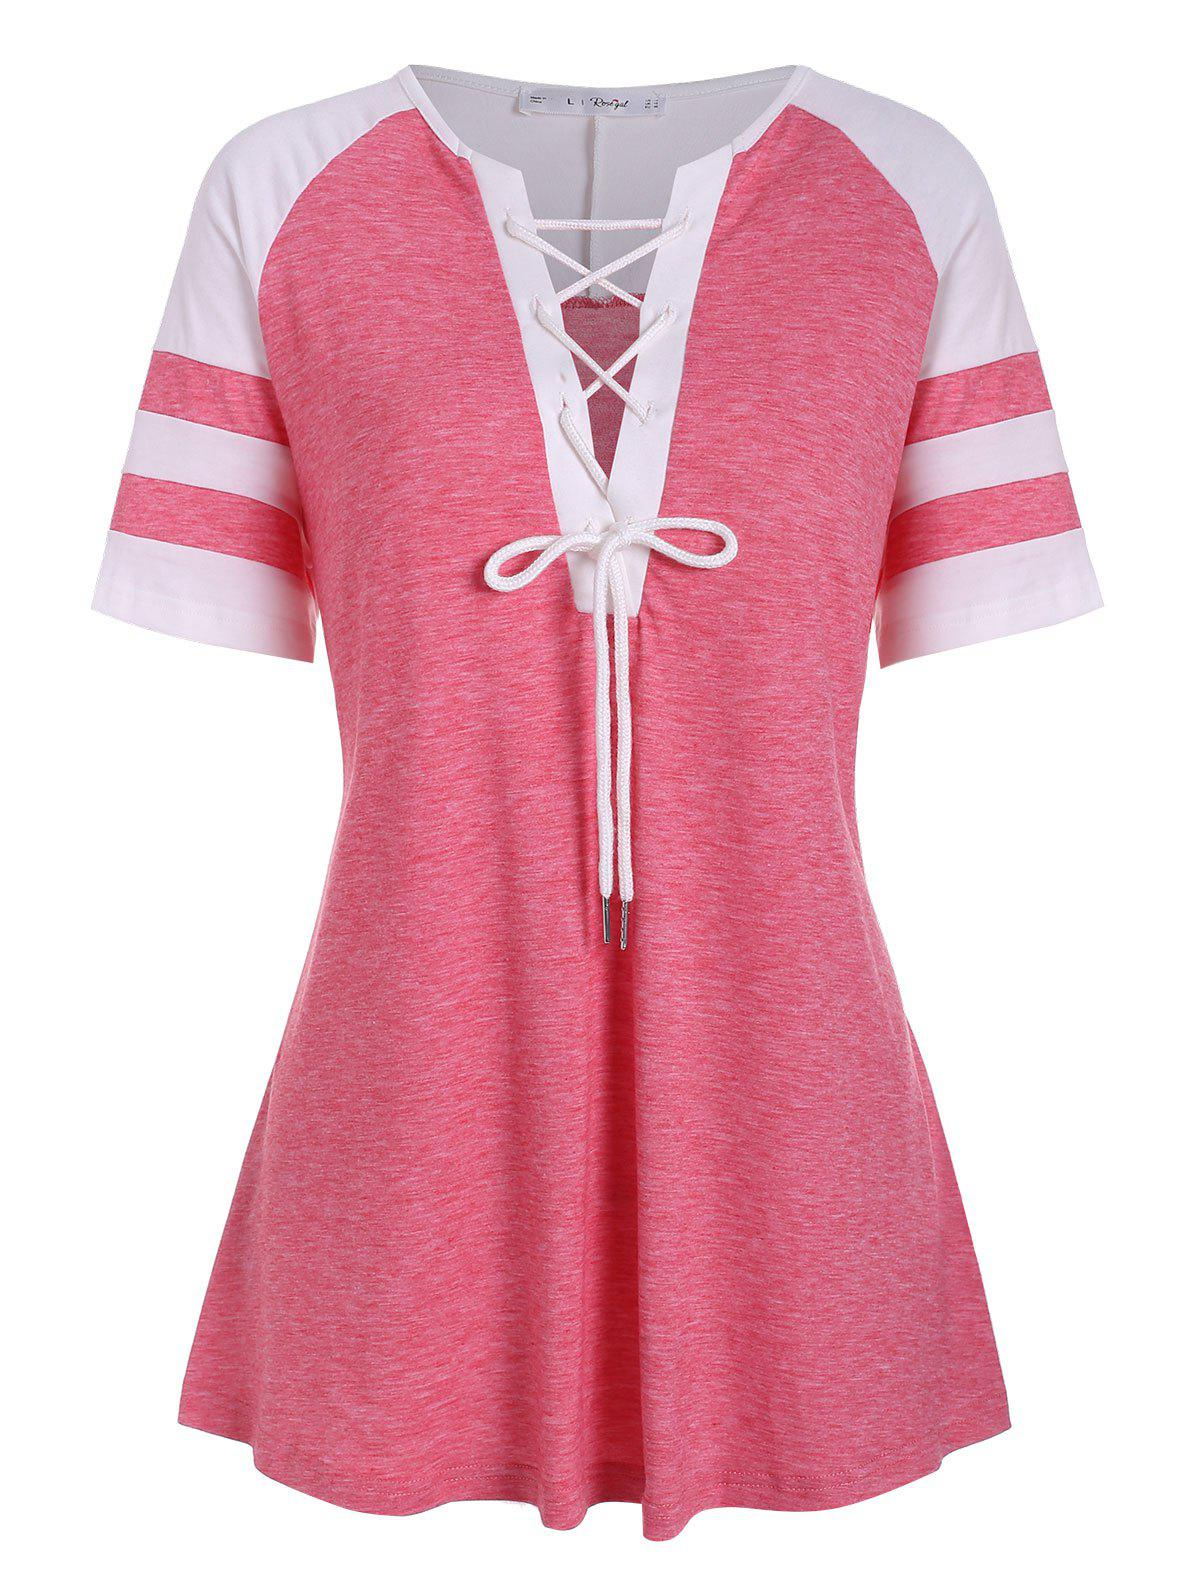 Lace Up Colorblock Stripes Panel Plus Size Top - BLUSH RED 2X